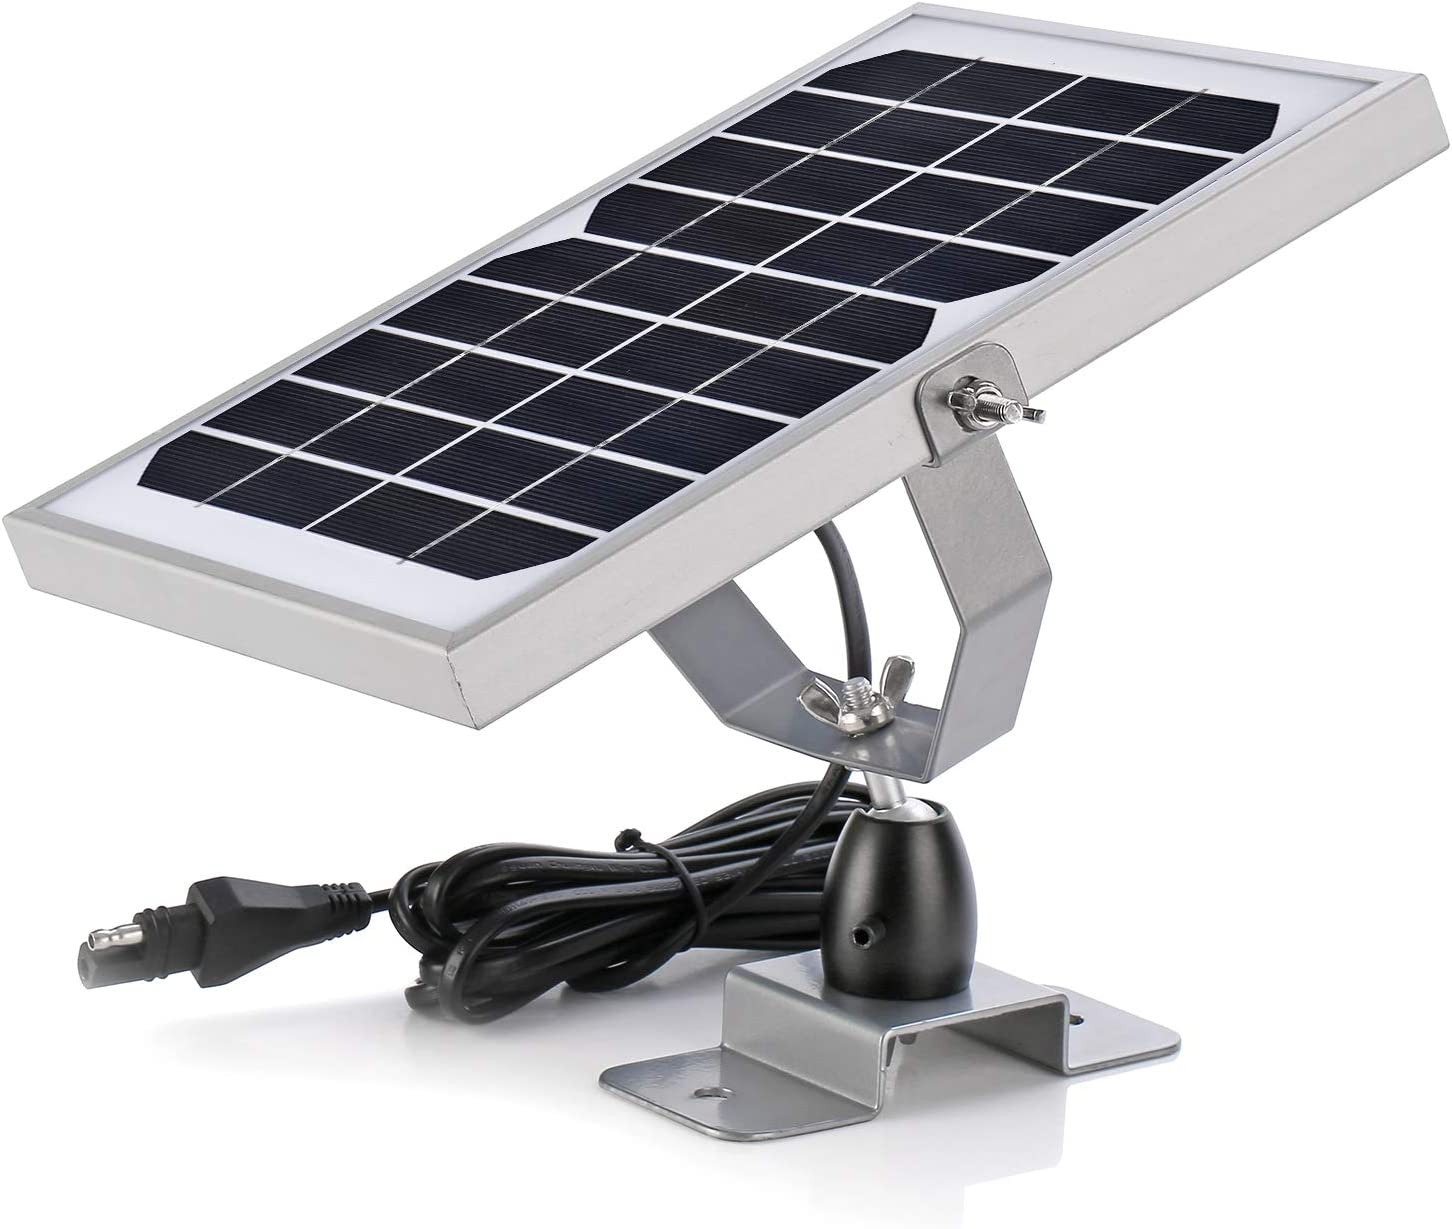 6V Waterproof Solar Battery Trickle Charger & Maintainer - 5 Watts Solar Panel Built-in Intelligent MPPT Solar Charge Controller + Adjustable Mount Bracket + SAE Cable Kits